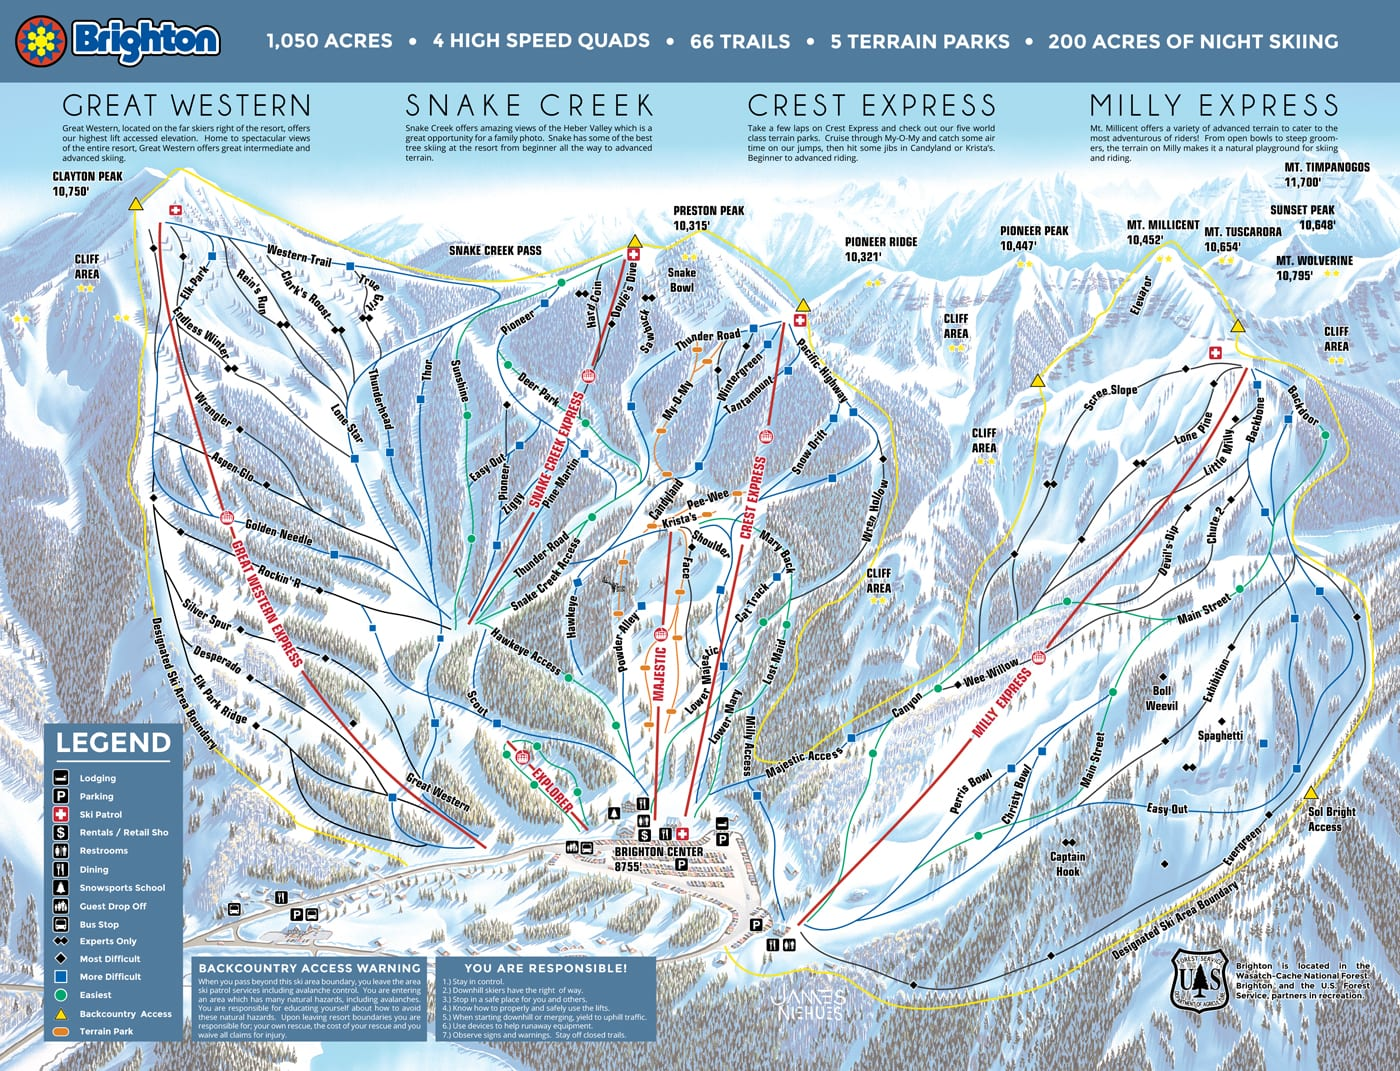 Brighton Trail Map. Salt Lake City Skiing